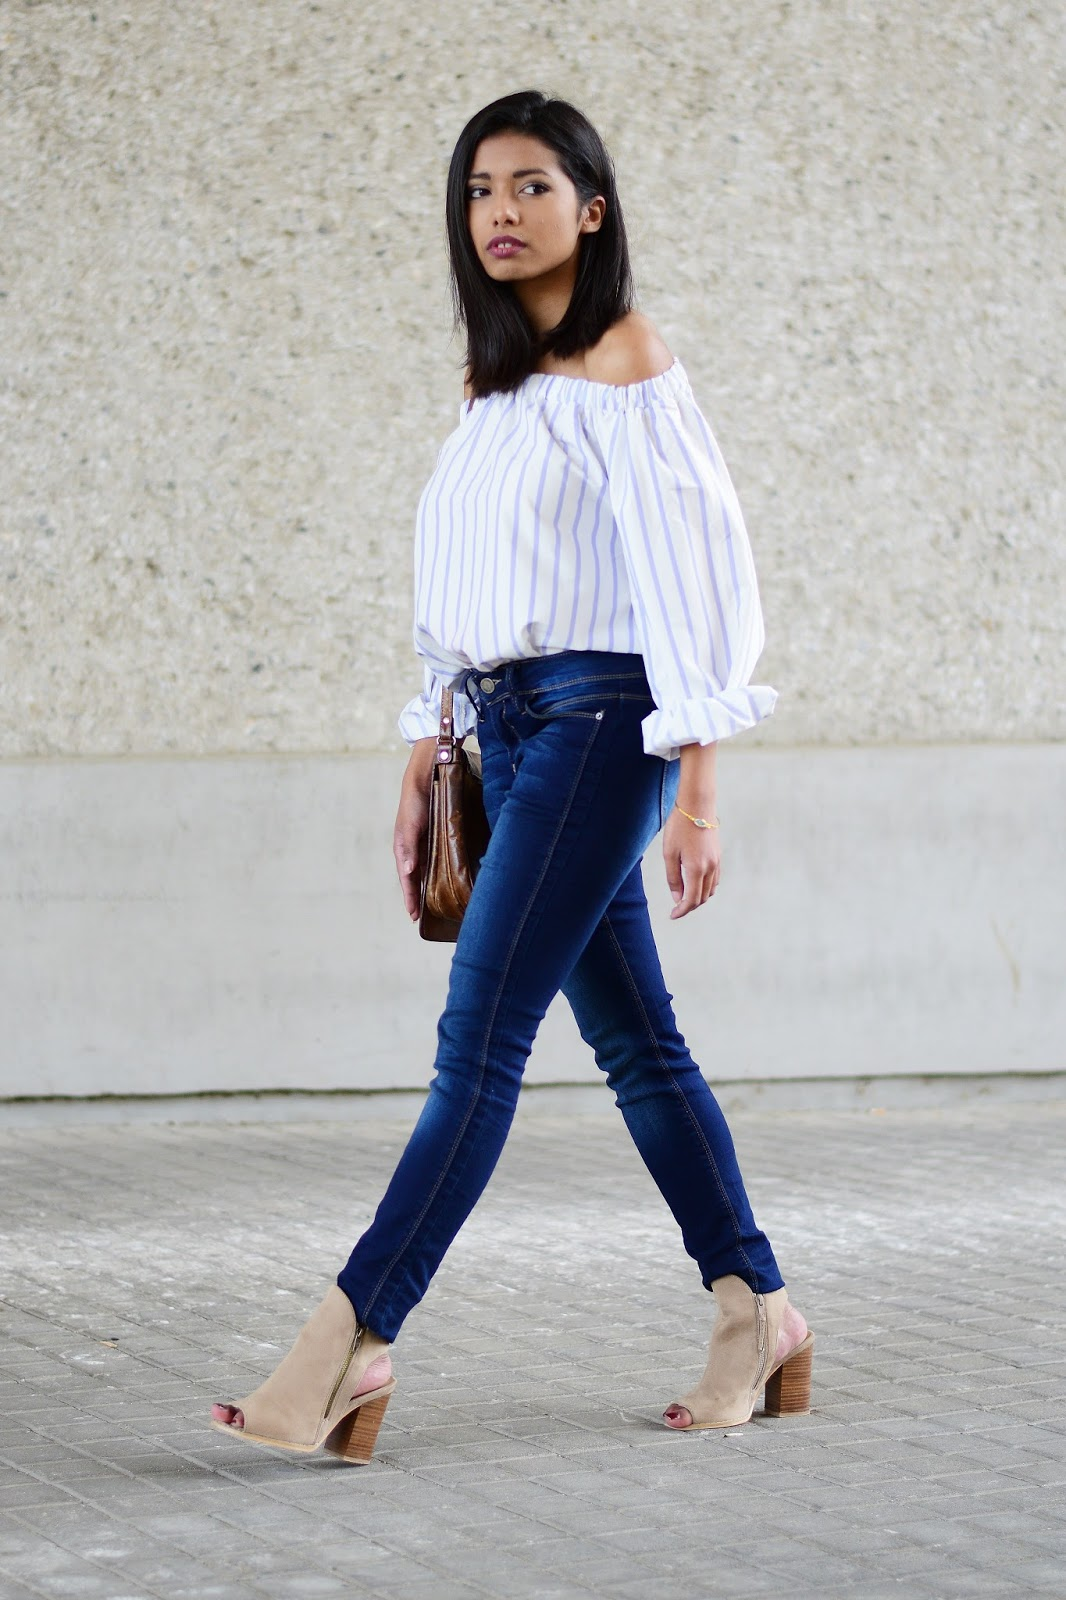 off-shoulder blouse outfit